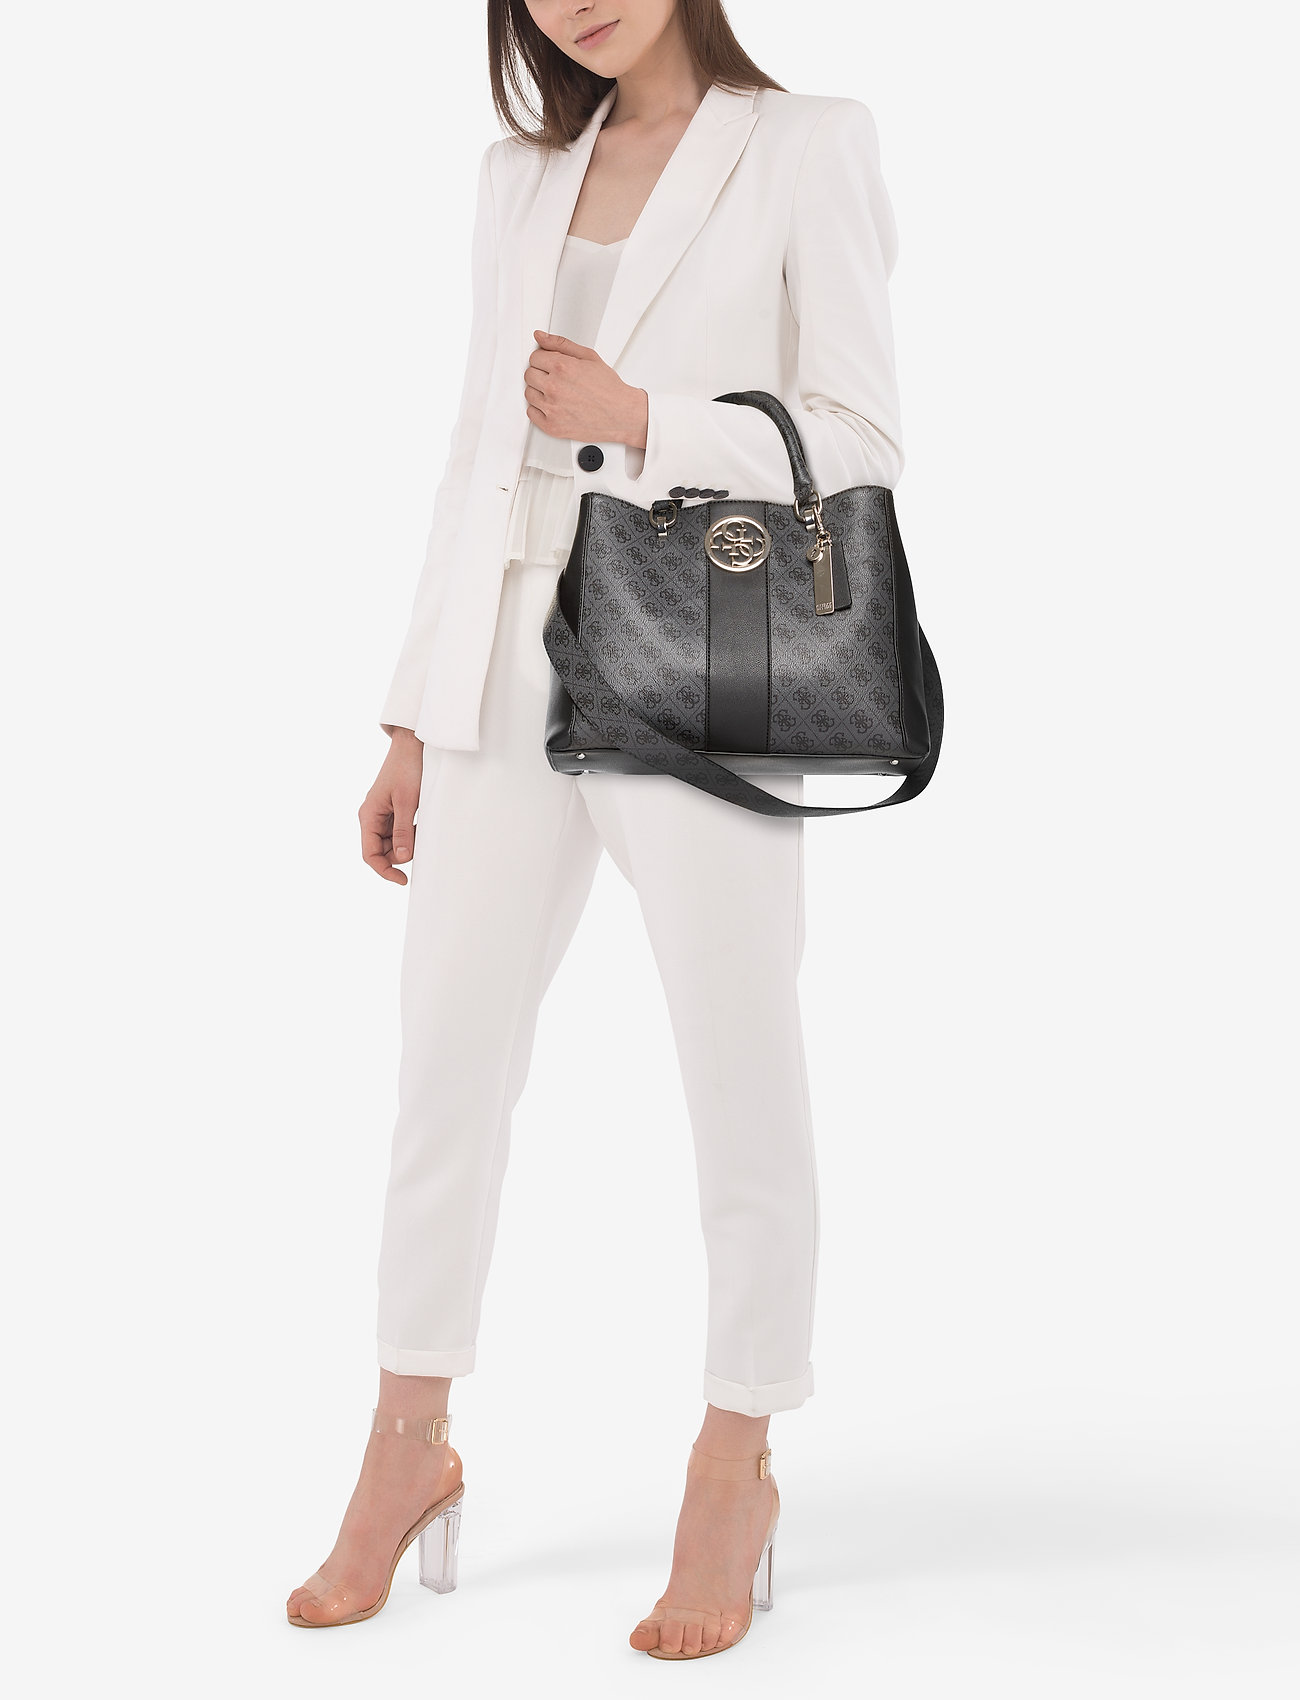 GUESS BLUEBELLE CARRYALL - COAL